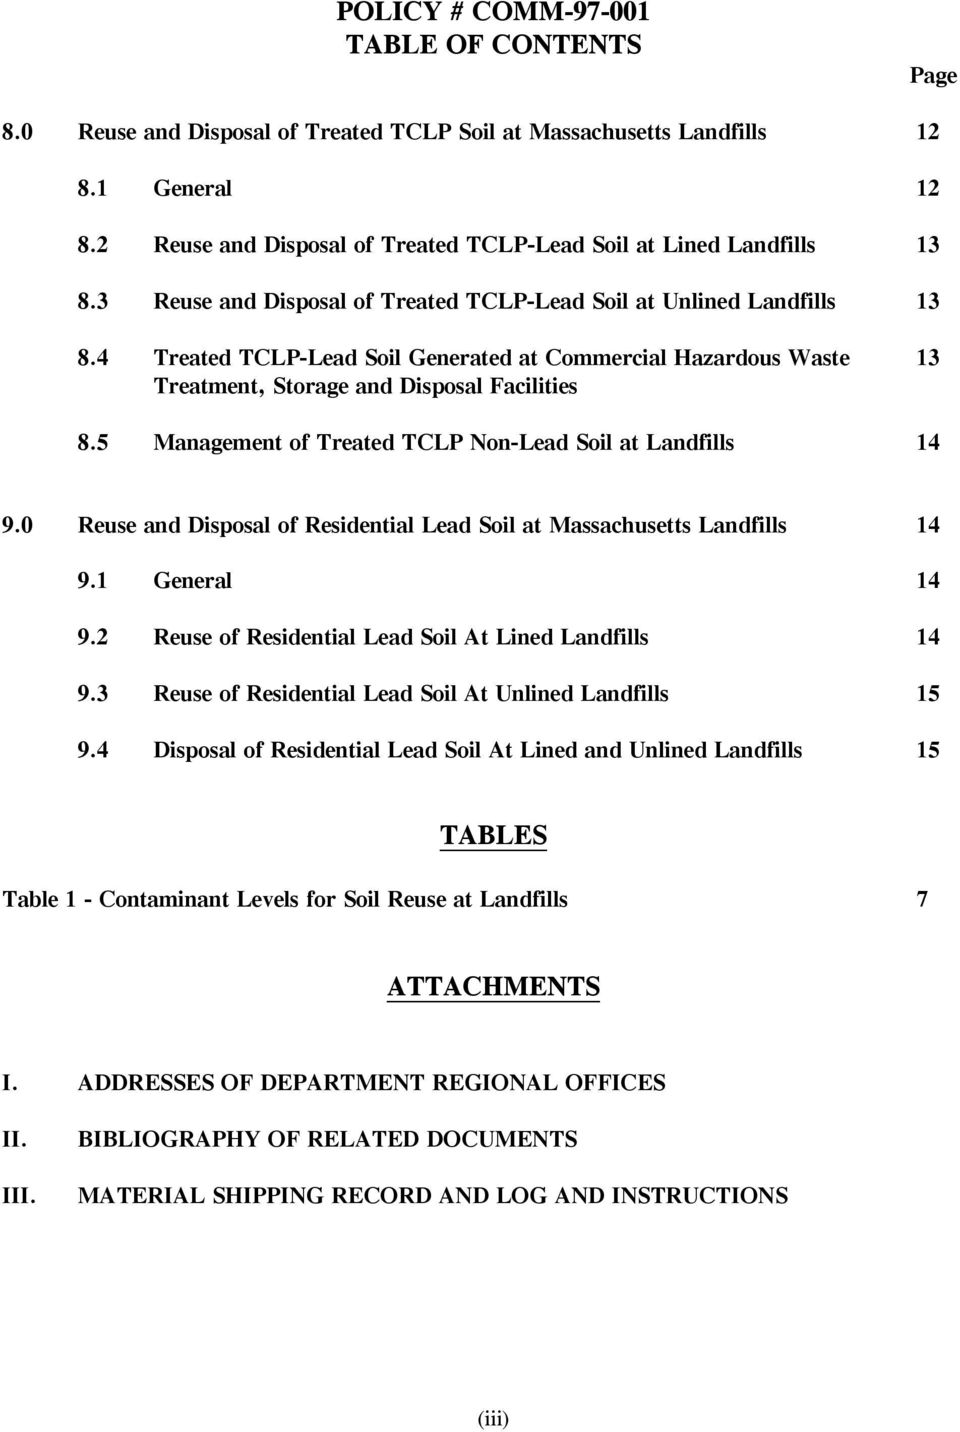 4 Treated TCLP-Lead Soil Generated at Commercial Hazardous Waste 13 Treatment, Storage and Disposal Facilities 8.5 Management of Treated TCLP Non-Lead Soil at Landfills 14 9.